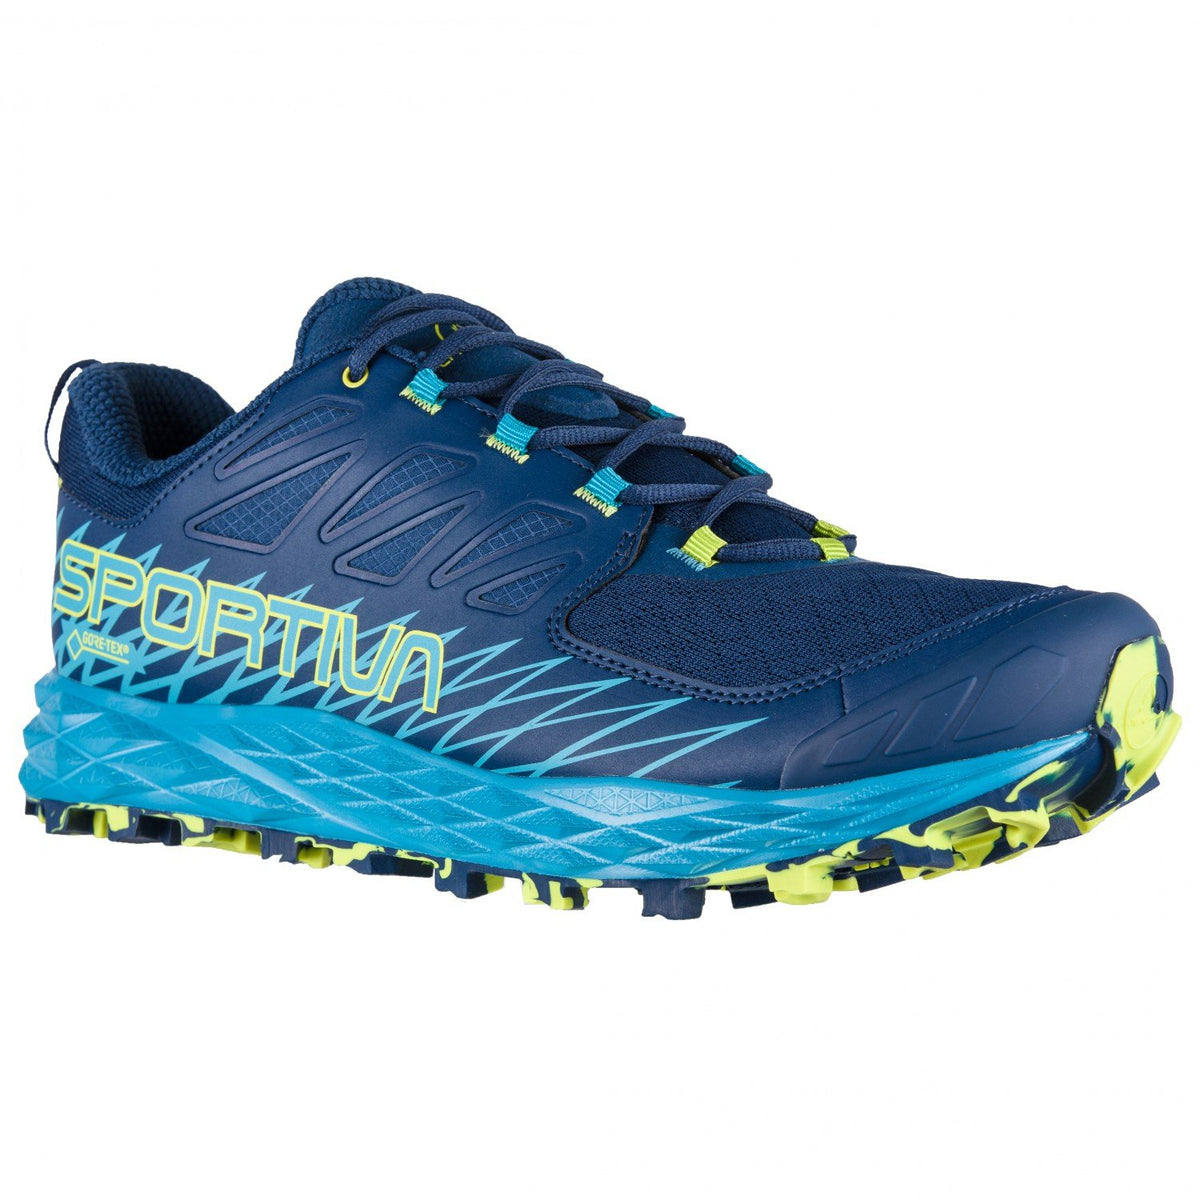 La Sportiva Lycan GTX trail running shoe, outer side view in Blue colours